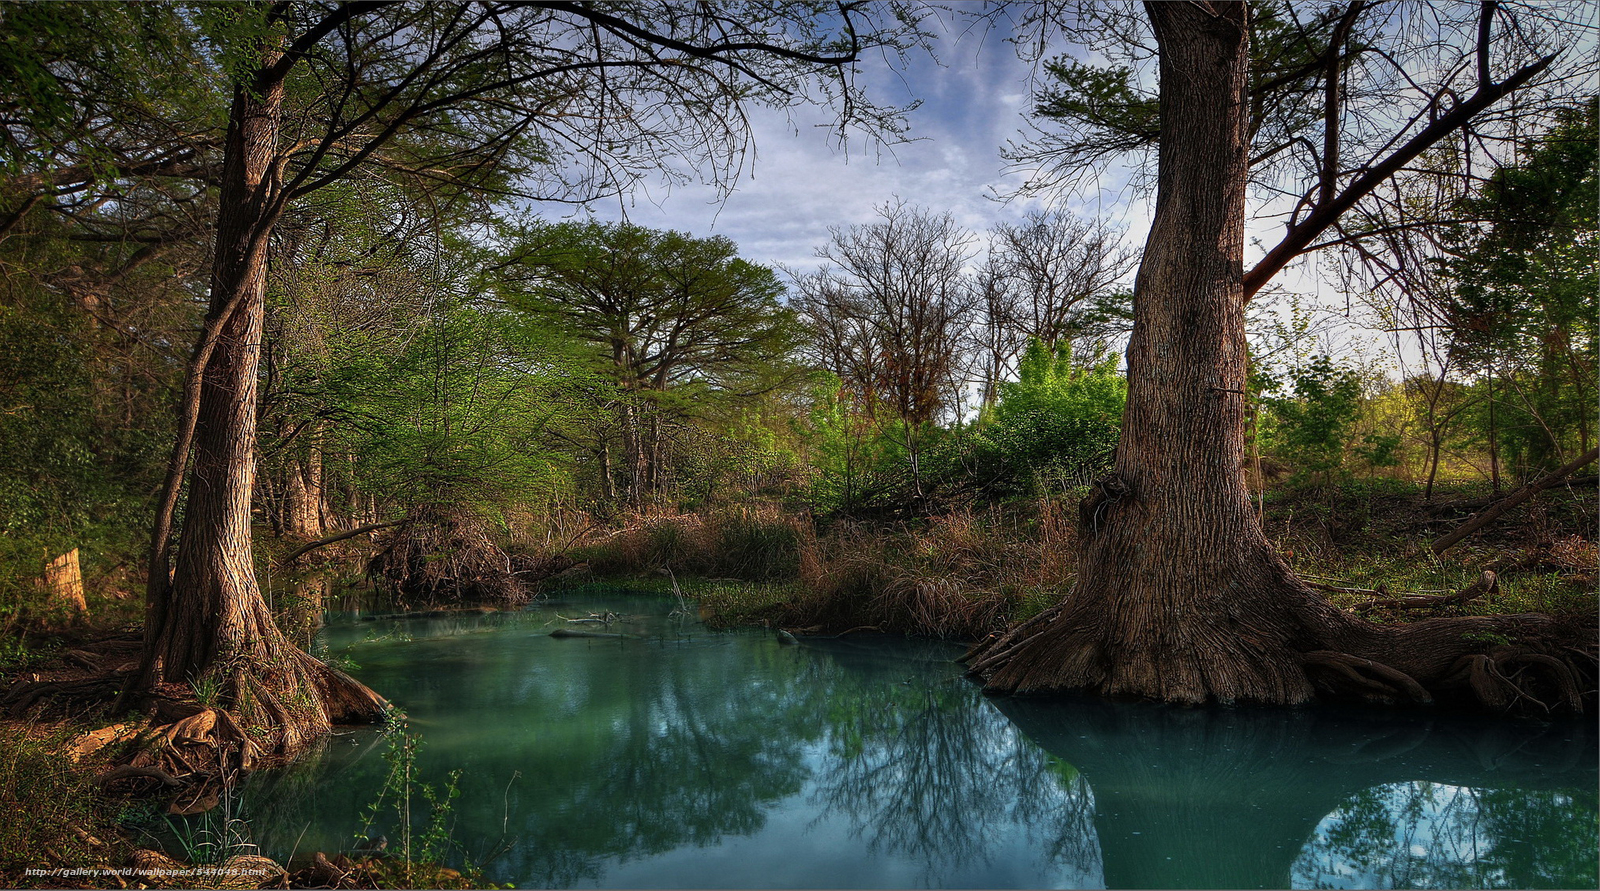 Download wallpaper Hill Country Creek texas desktop wallpaper 1600x891